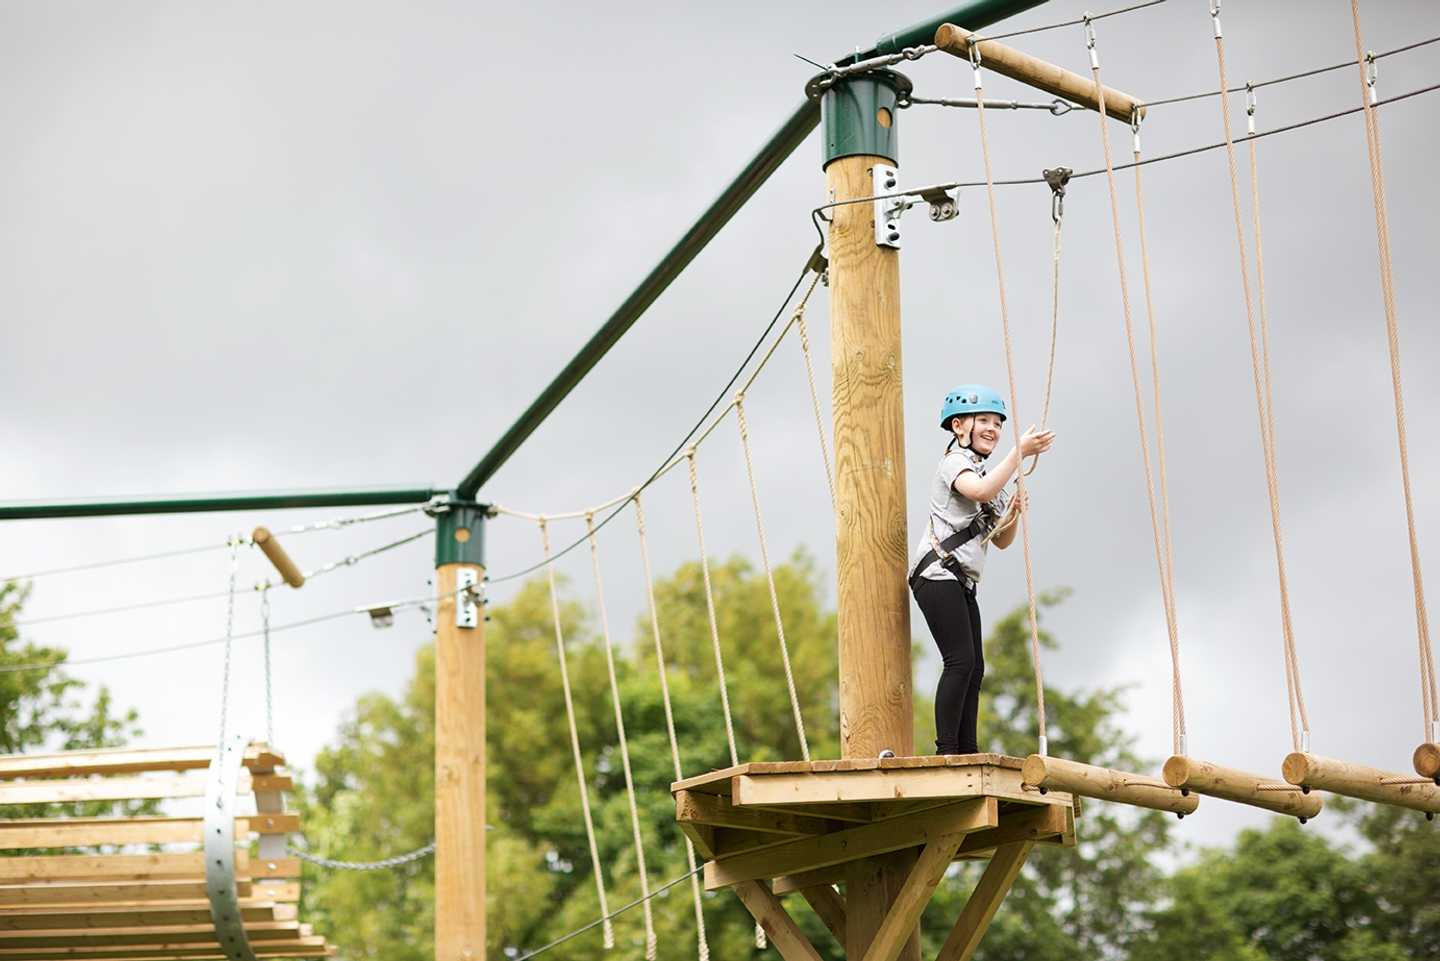 A child taking part in Aerial Adventure